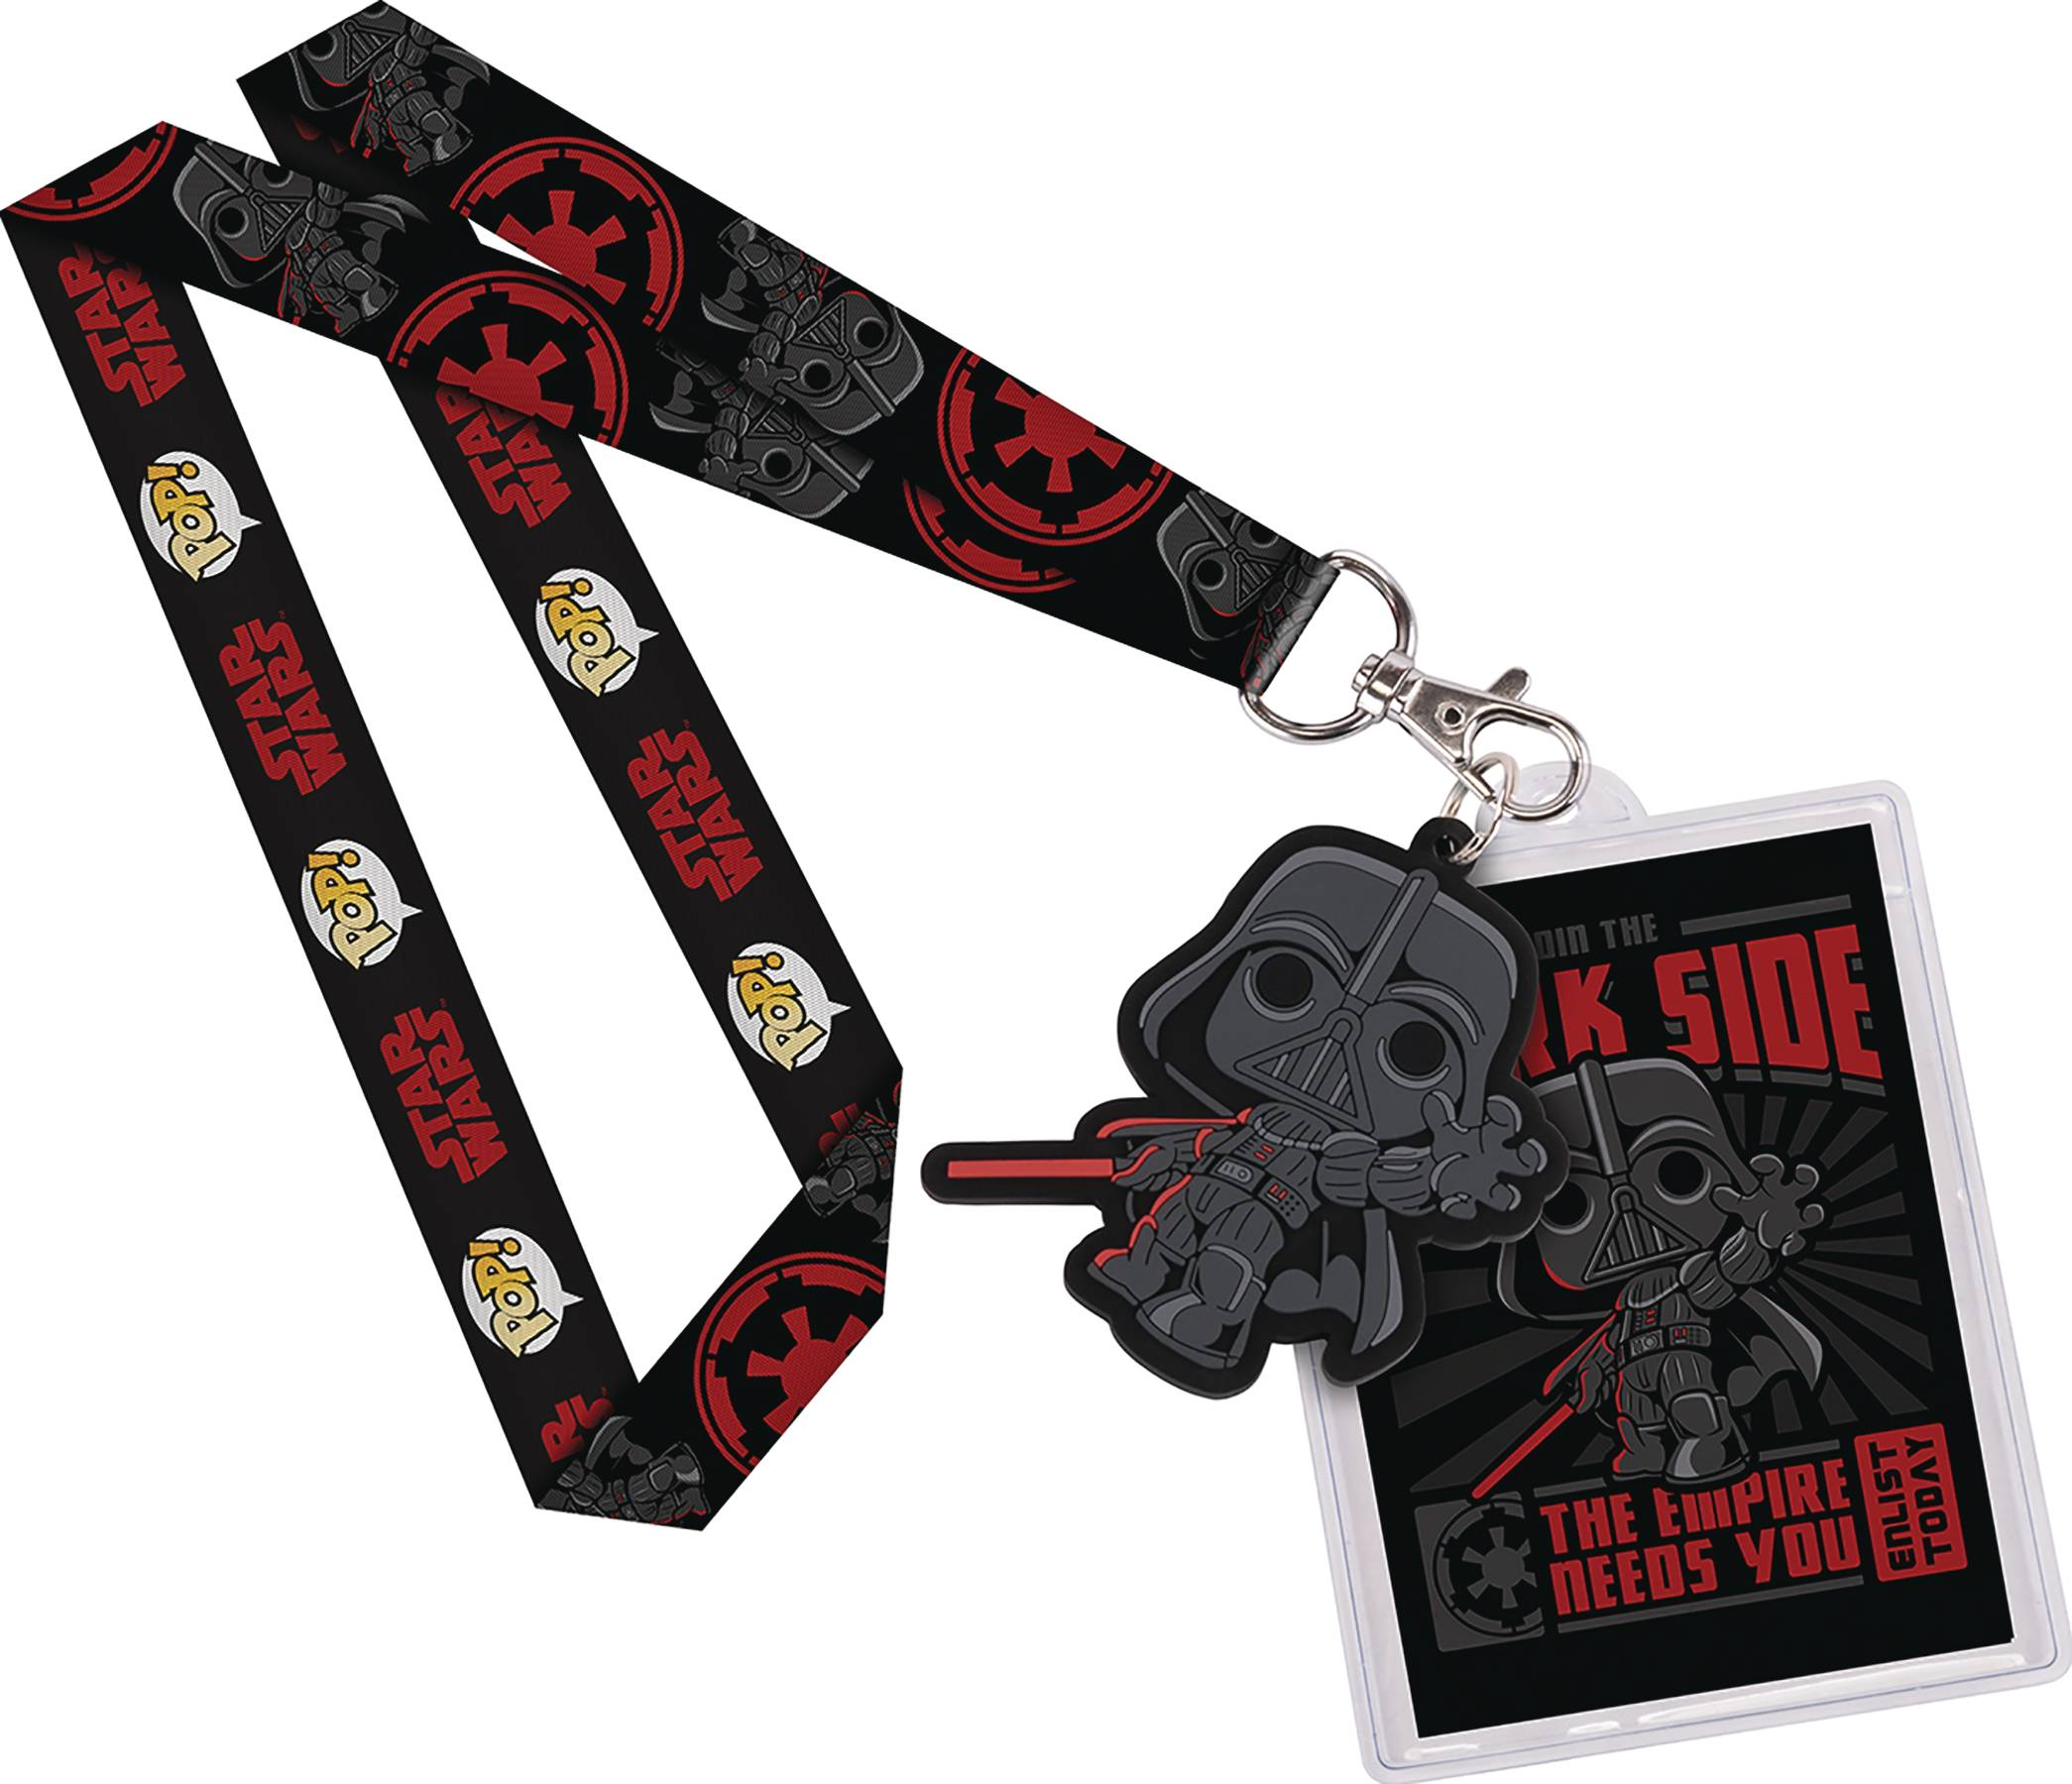 POP STAR WARS DARTH VADER LANYARD